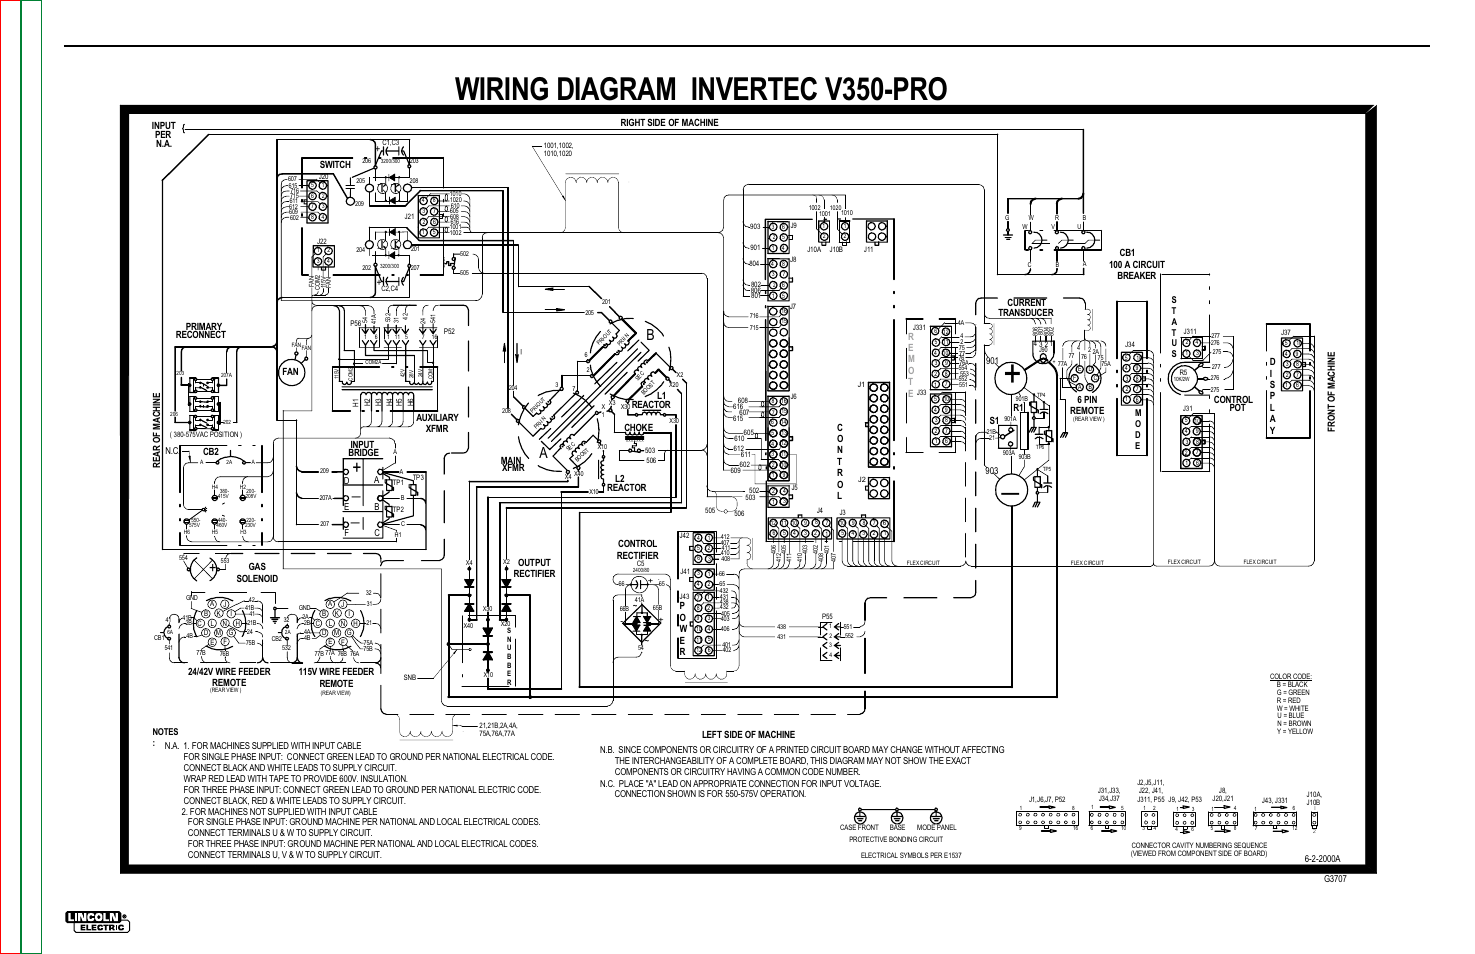 Wiring Diagram Invertec V350-pro, Electrical Diagrams